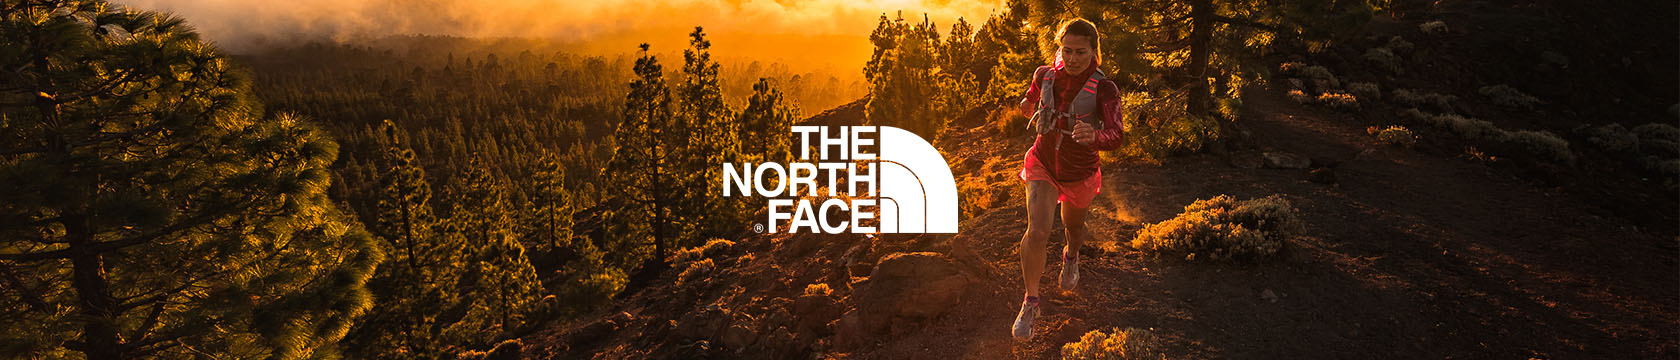 39f7f6ad5 The North Face Clothing & Footwear, Rucksacks & Jackets | Cotswold ...